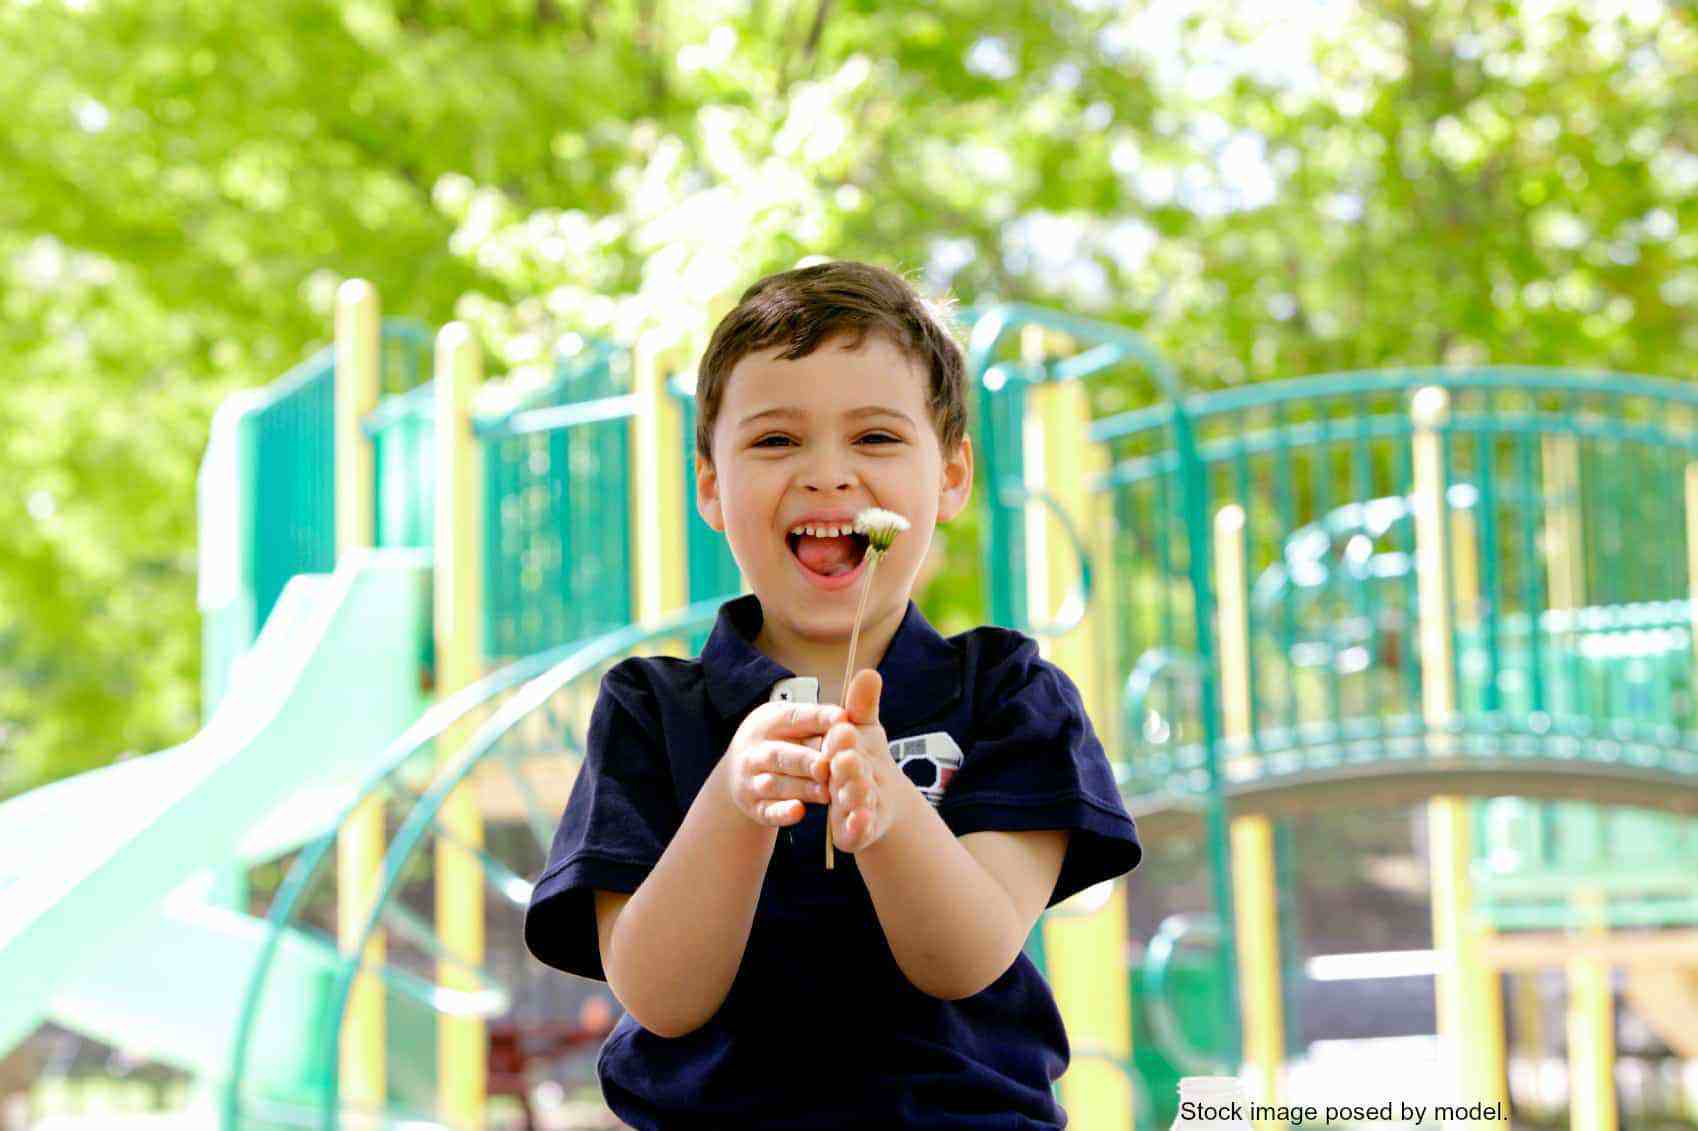 Little boy at playground smiling with dandelion in hands